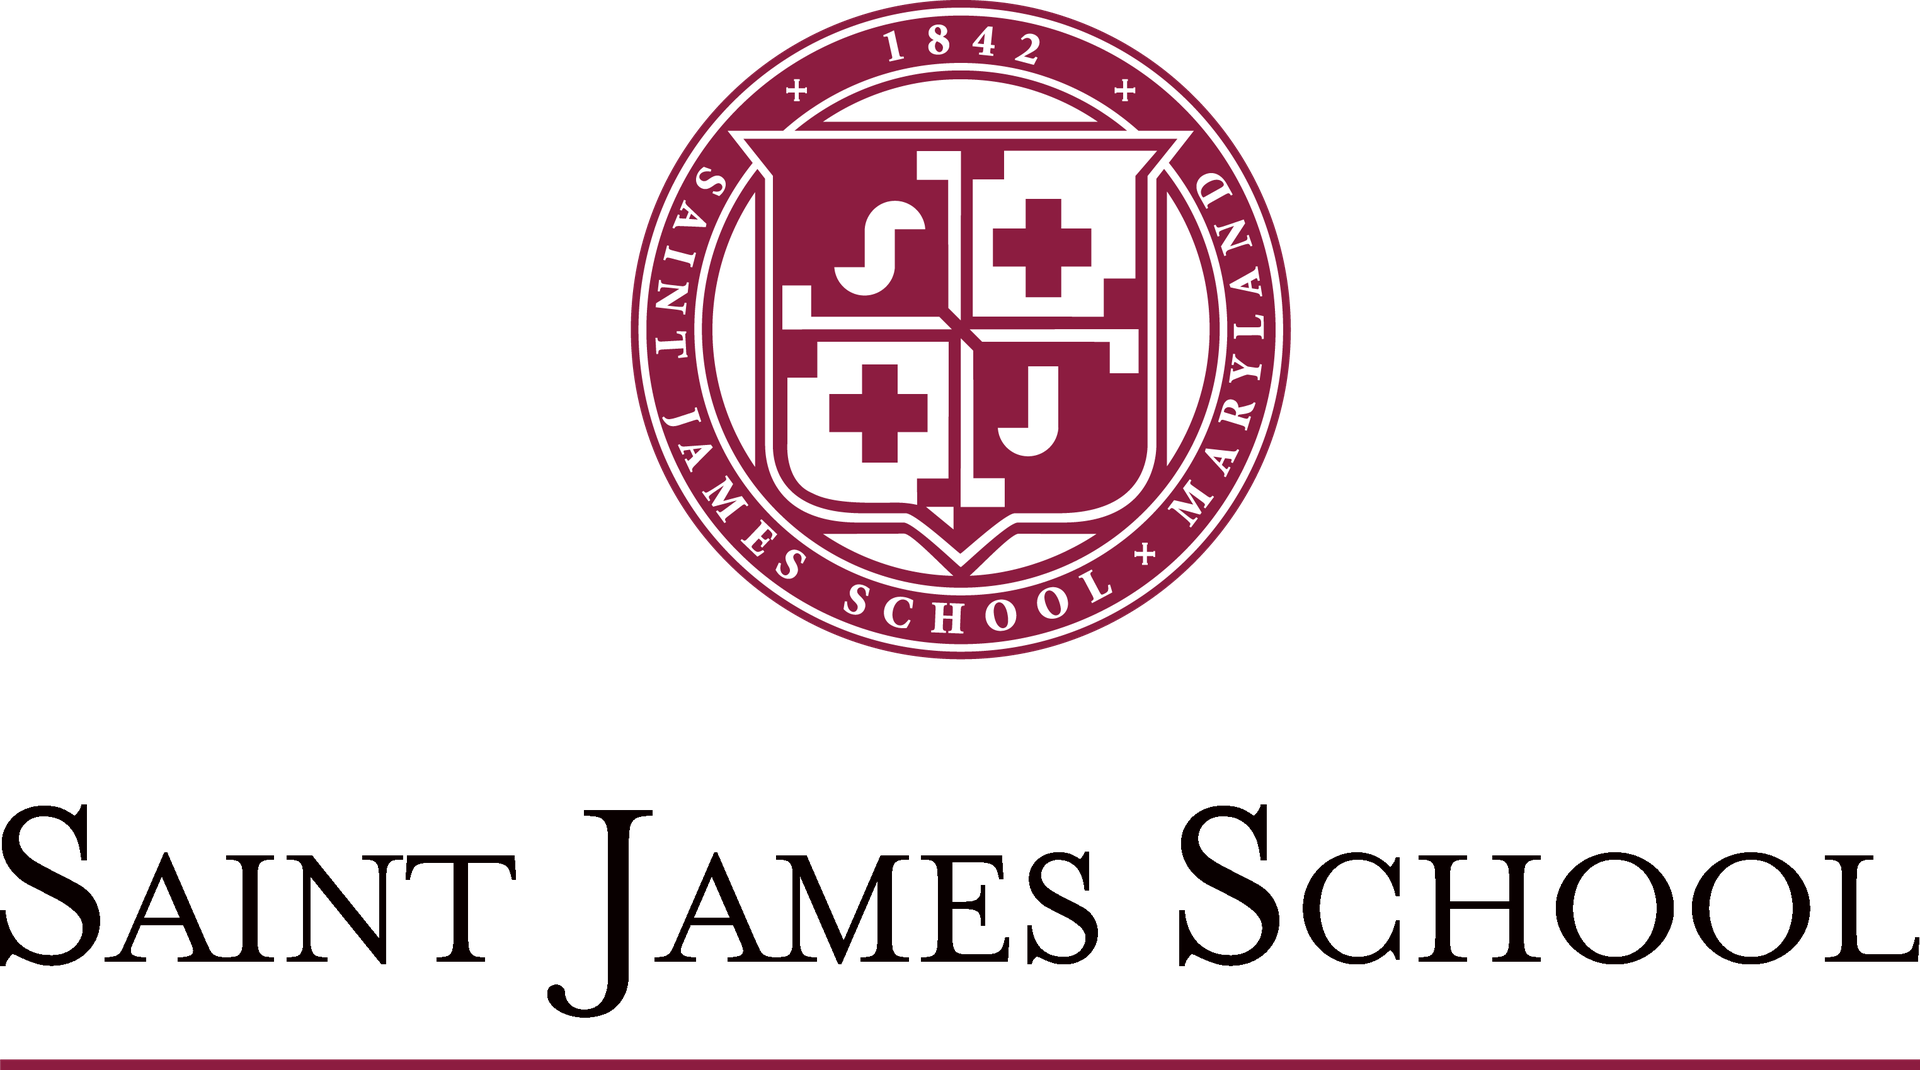 Saint James Celebrates 175 Years